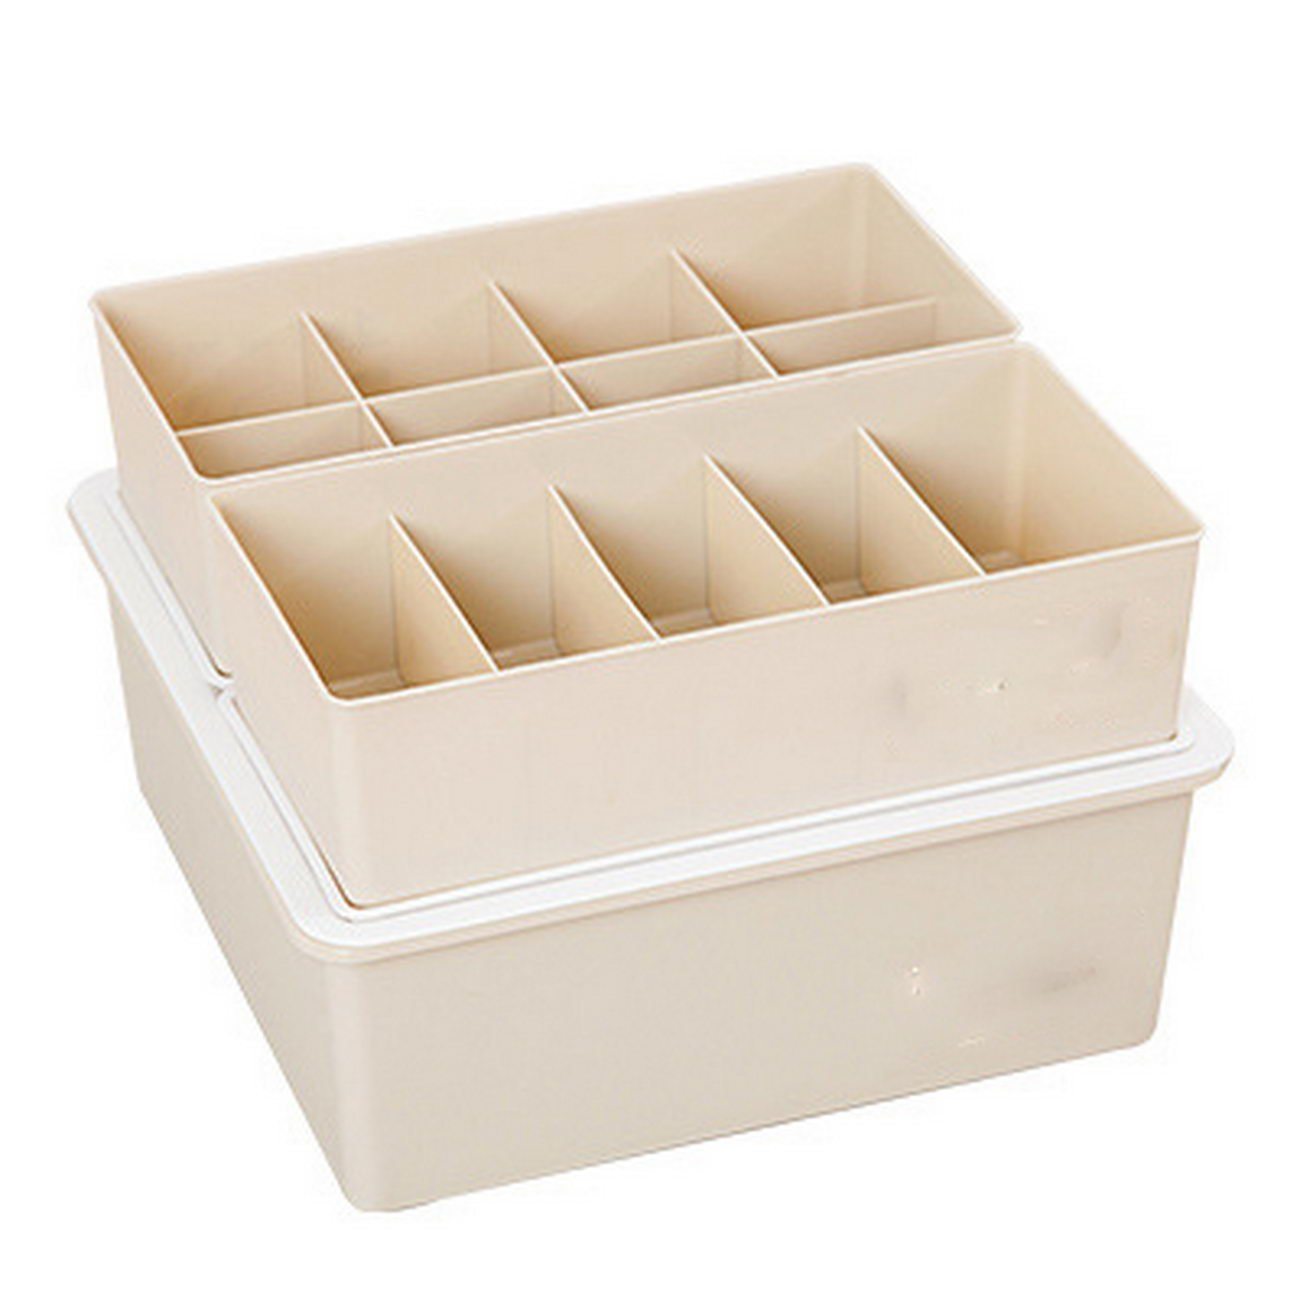 underwear storage box underwear storage box set desktop drawer storage underwear socks, underwear storage box, storage box, drawer storage boxes, drawer storage boxes, underwear storage box